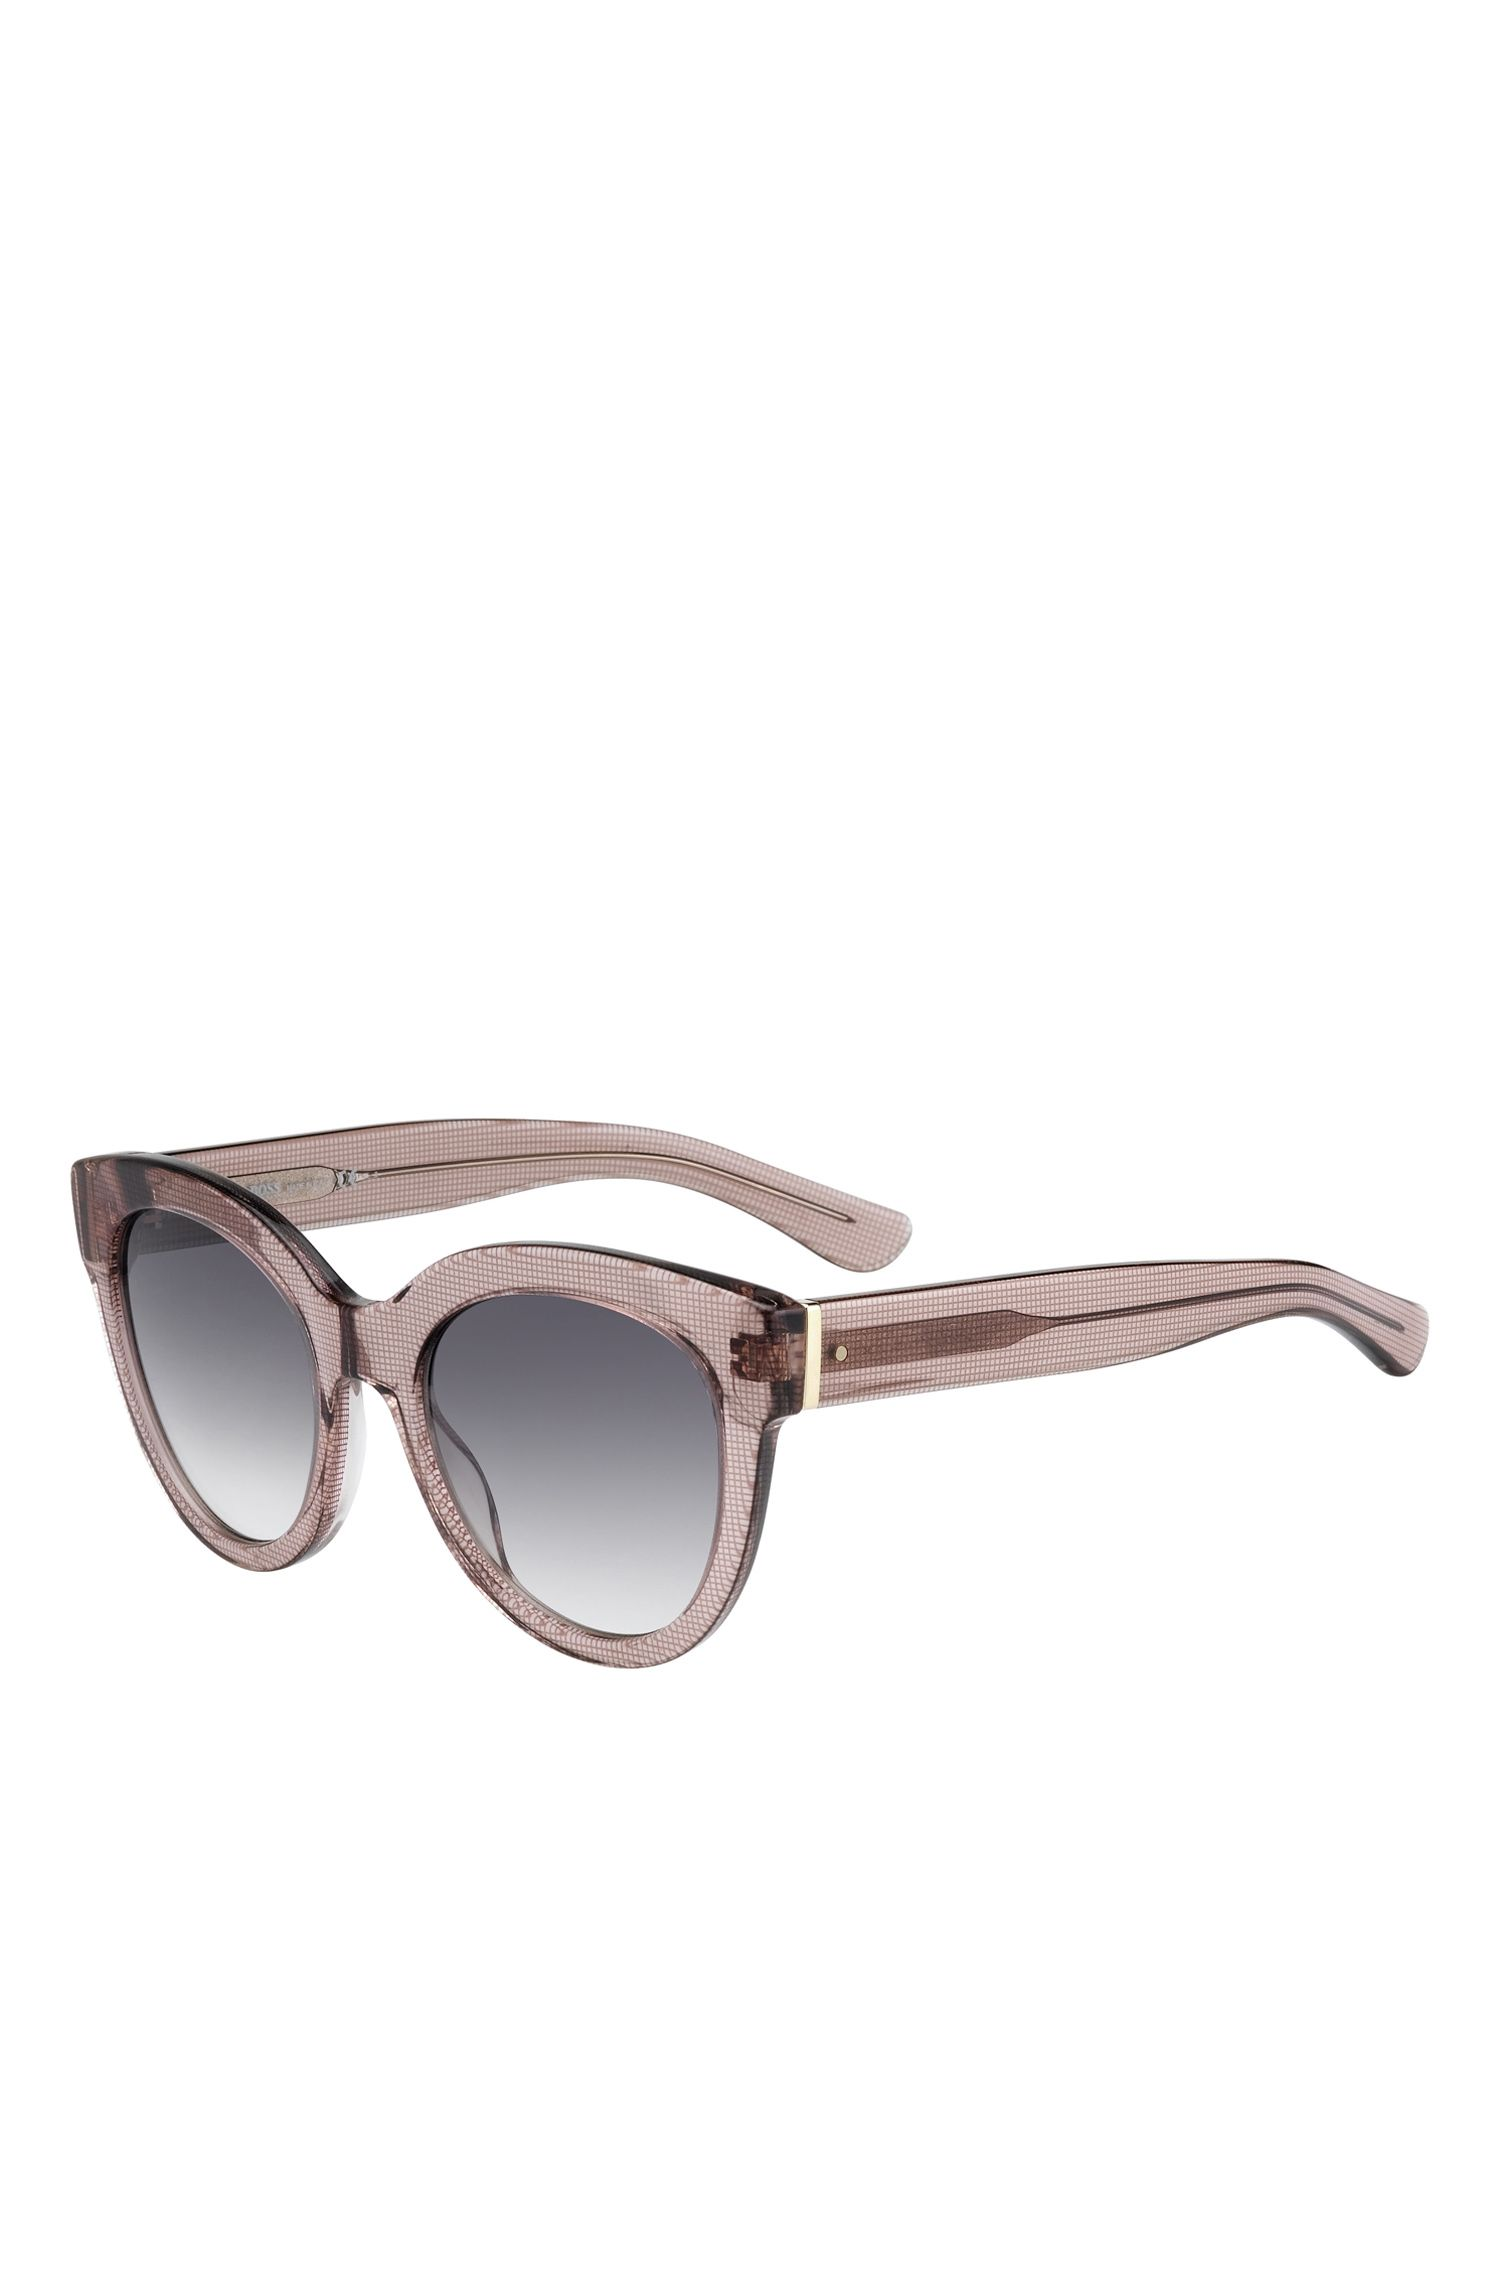 Gray Gradient Lens Cateye Sunglasses | BOSS 0675